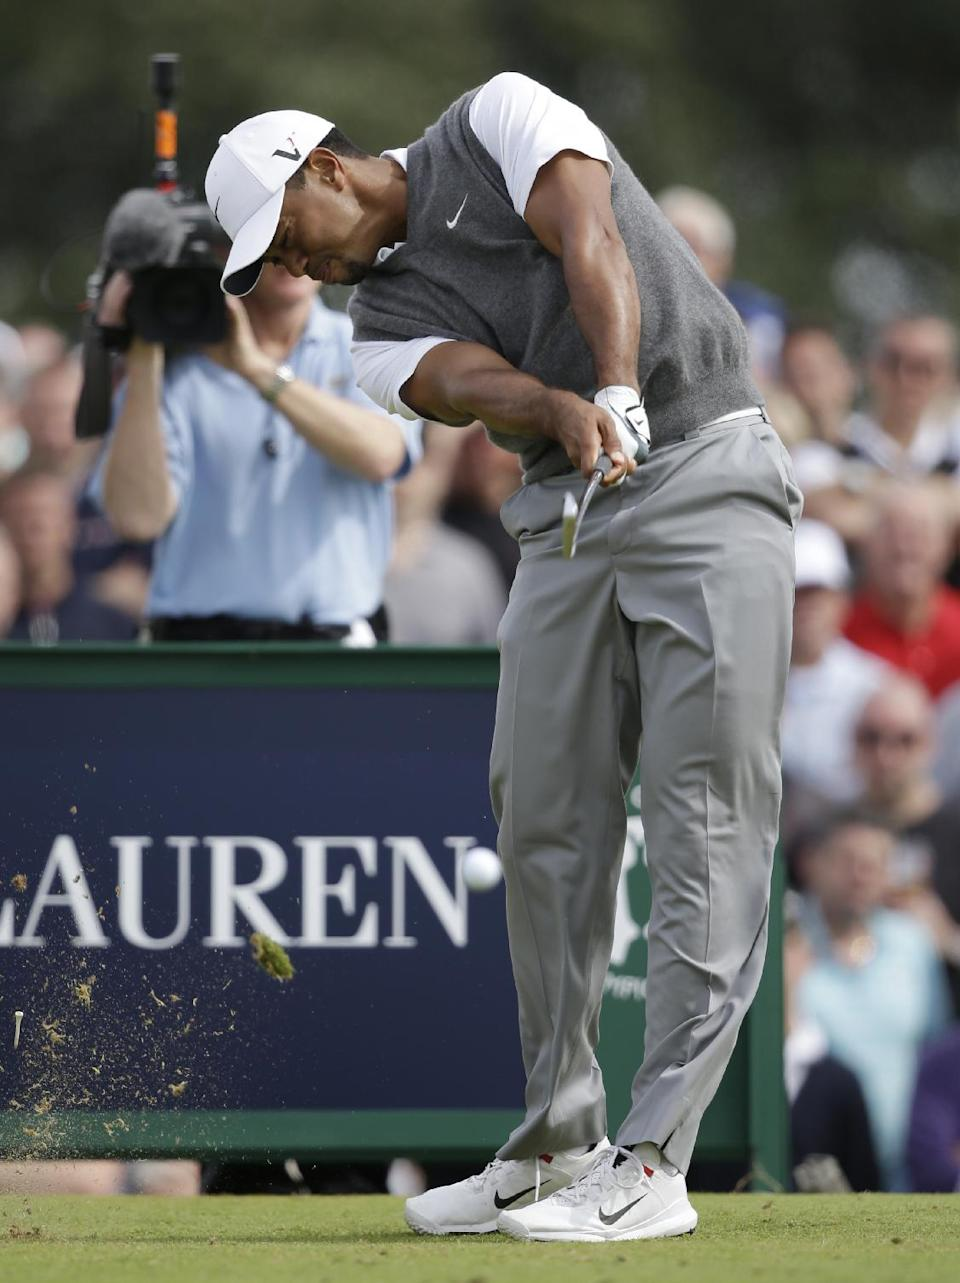 Tiger Woods of the United States plays a shot off the fourth tee at Royal Lytham & St Annes golf club during the third round of the British Open Golf Championship, Lytham St Annes, England, Saturday, July 21, 2012. (AP Photo/Tim Hales)